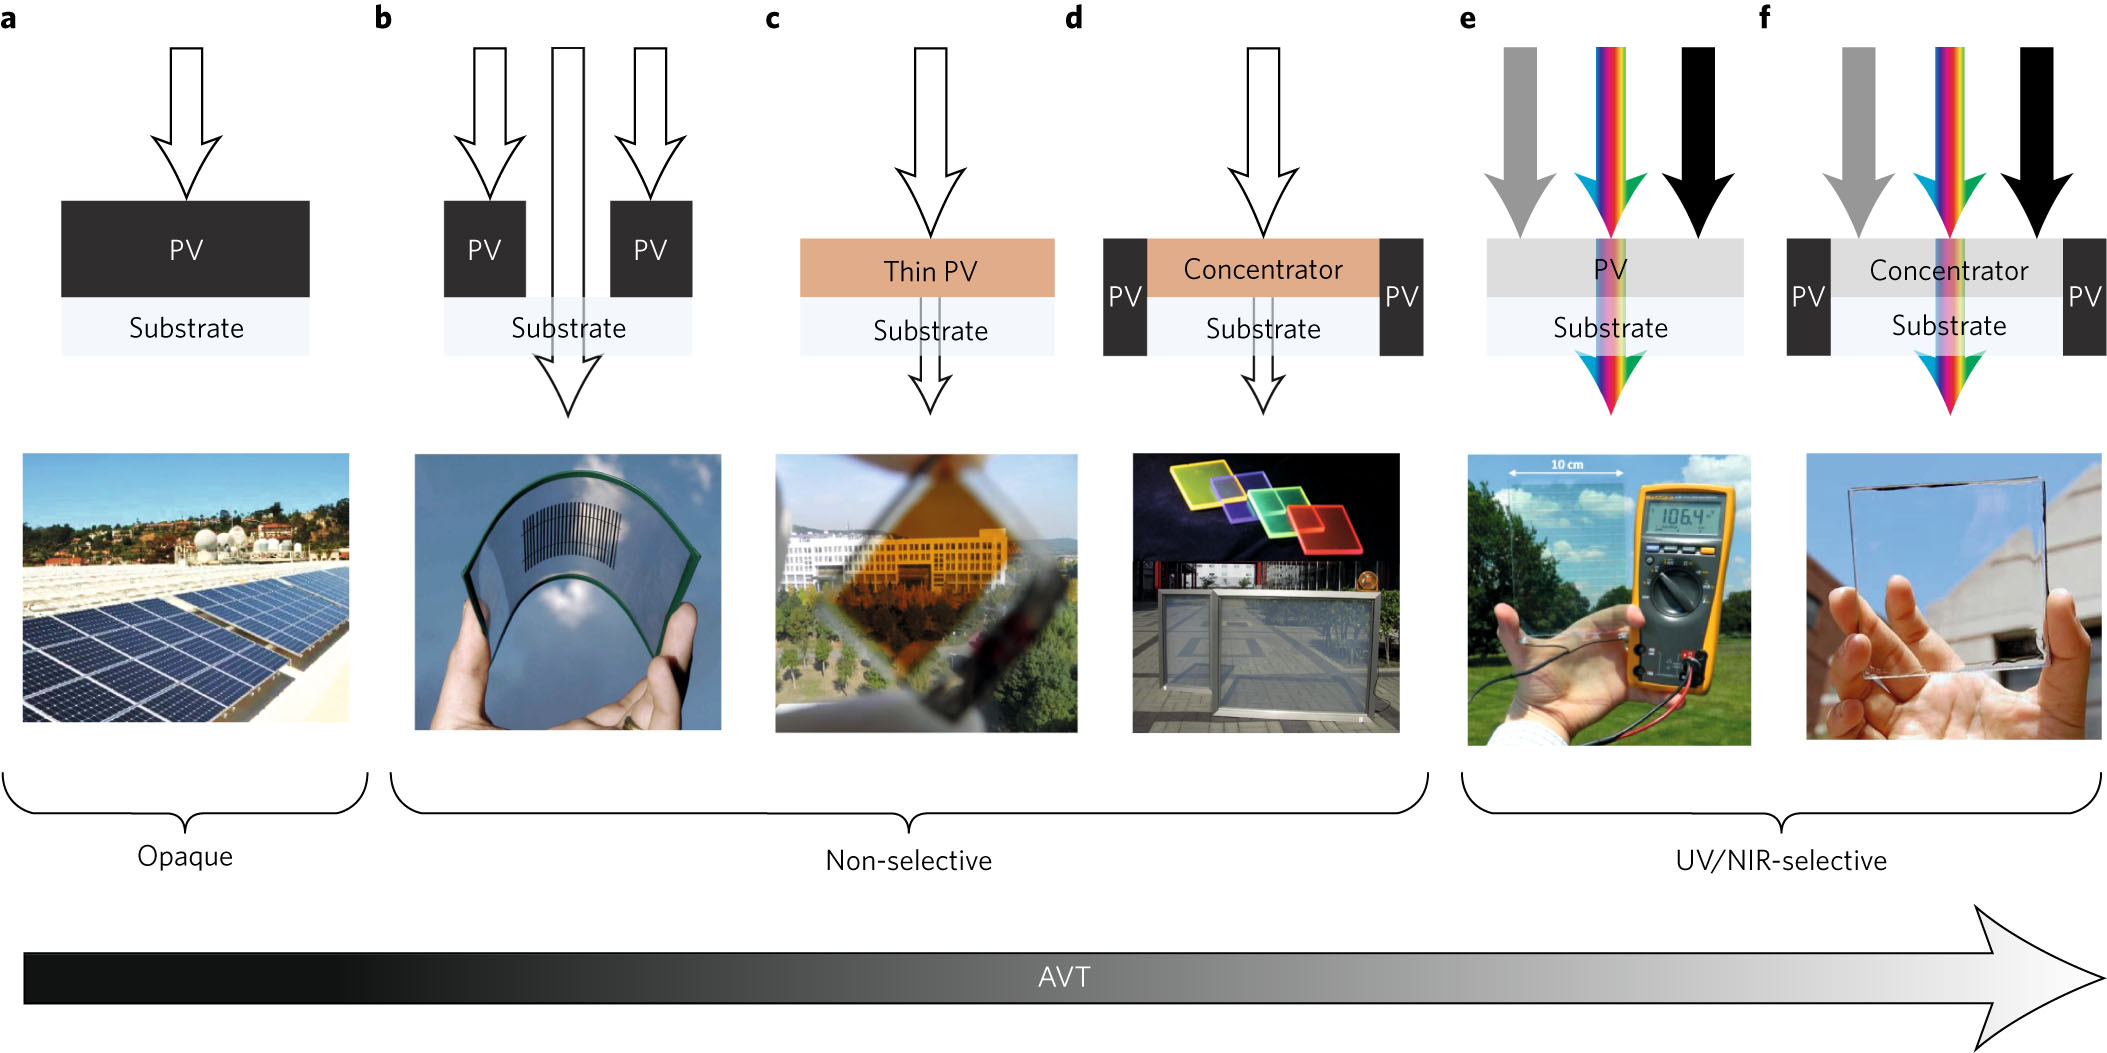 Emergence Of Highly Transparent Photovoltaics For Distributed How Solar Panels Work Diagram Panel Photovoltaic A Conventional Opaque Pv Where Full Spectrum Sunlight Represented By White Arrows Is Not Transmitted And An Example Module B